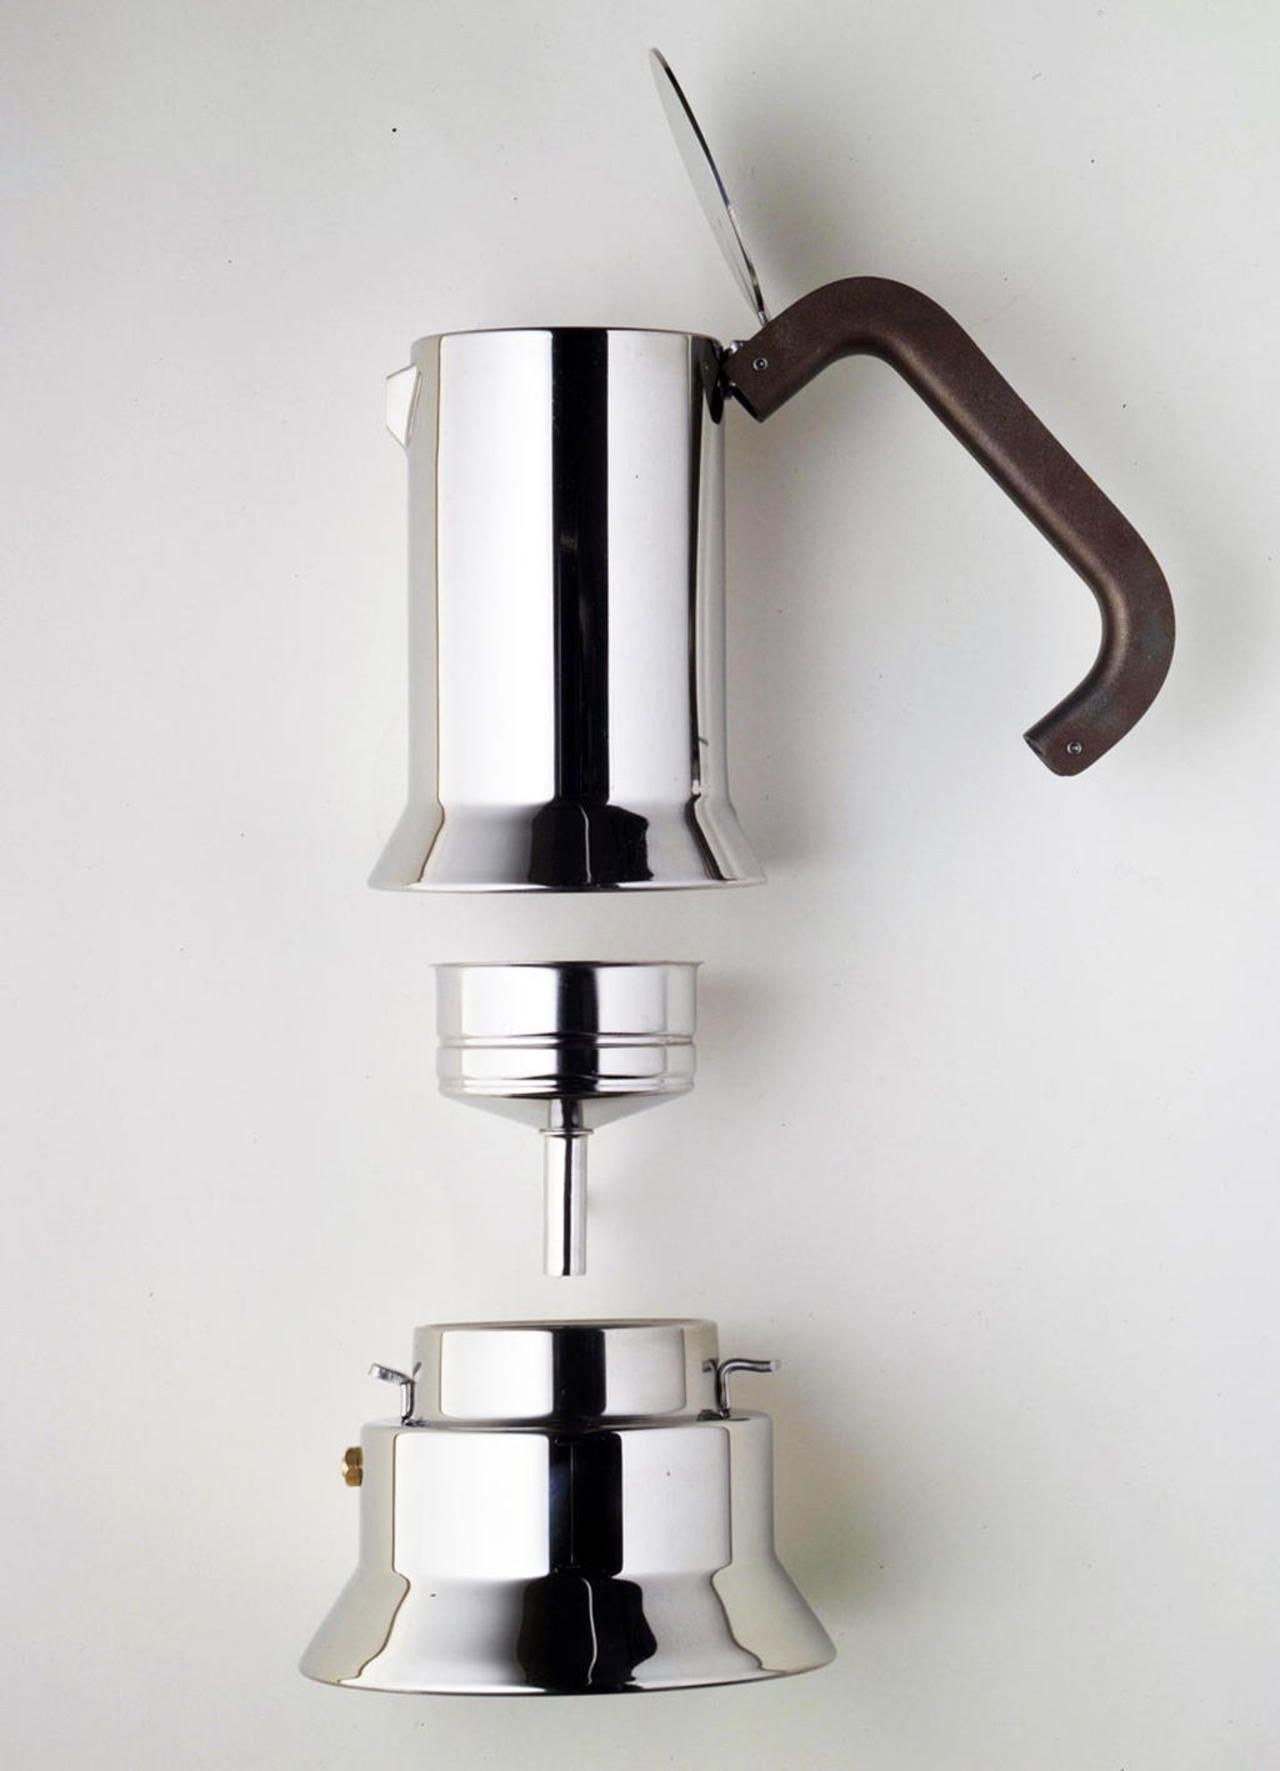 9090 1978 Espresso Coffee Maker Alessi Prize Compasso Du0027Oro 1979 Honourable  Mention At Bio